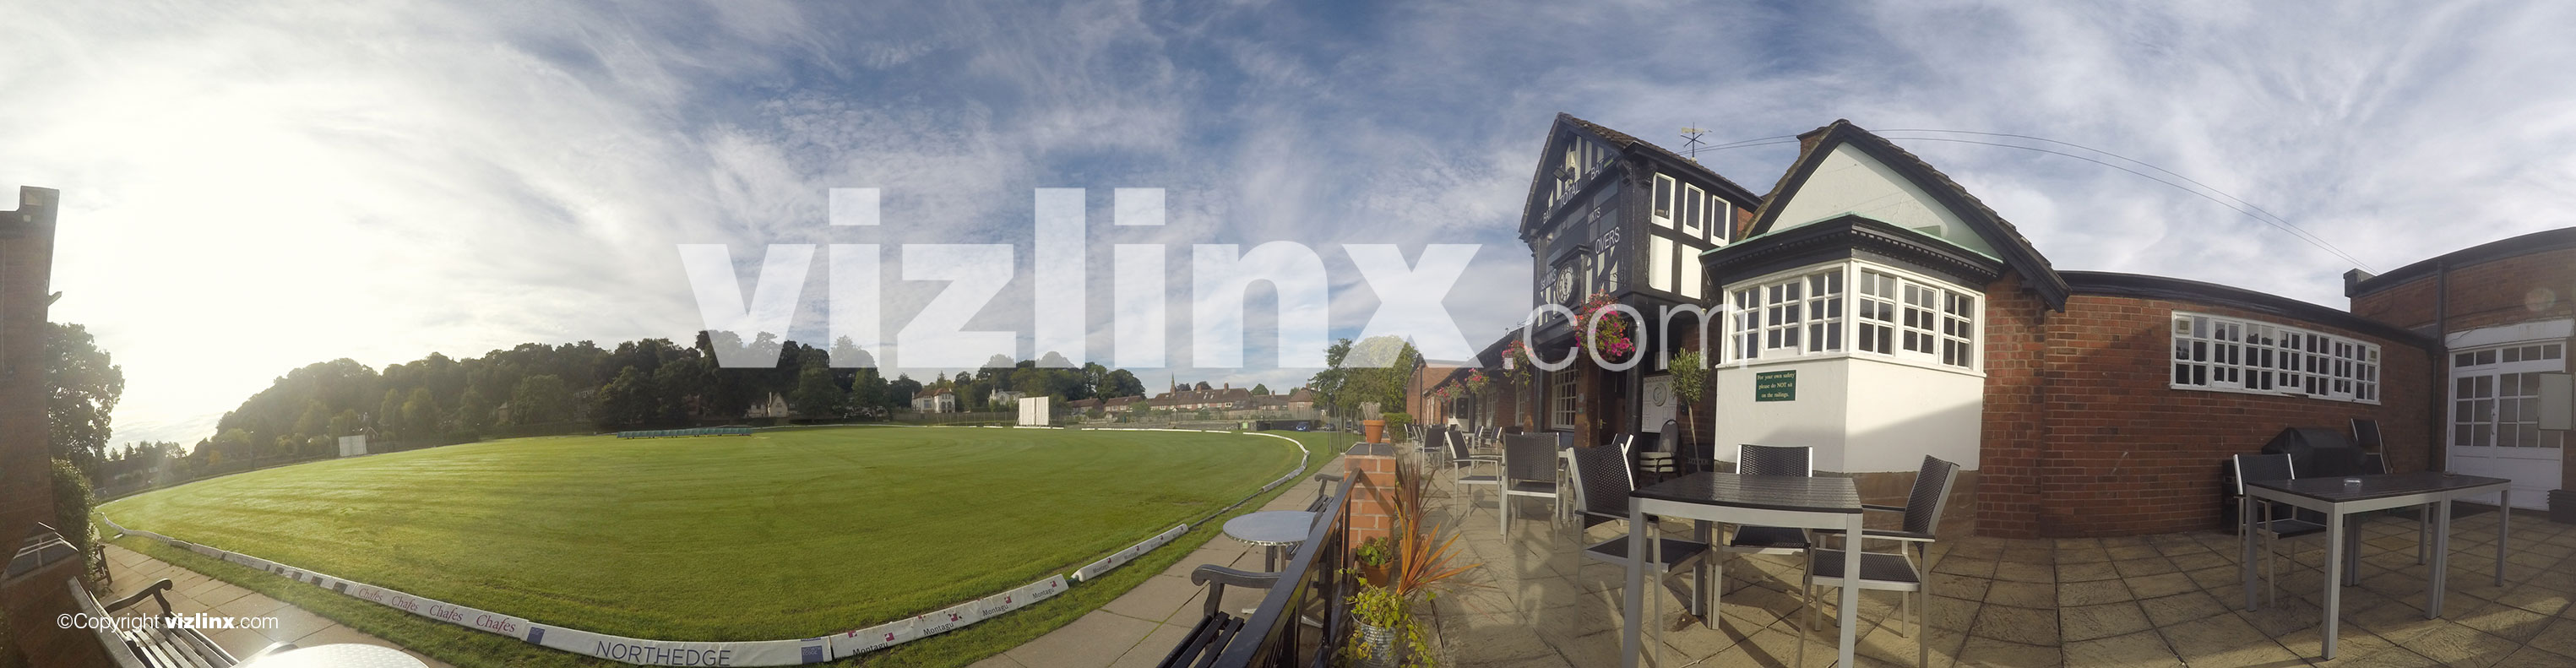 360 panorama of Alderley Edge Cricket Club